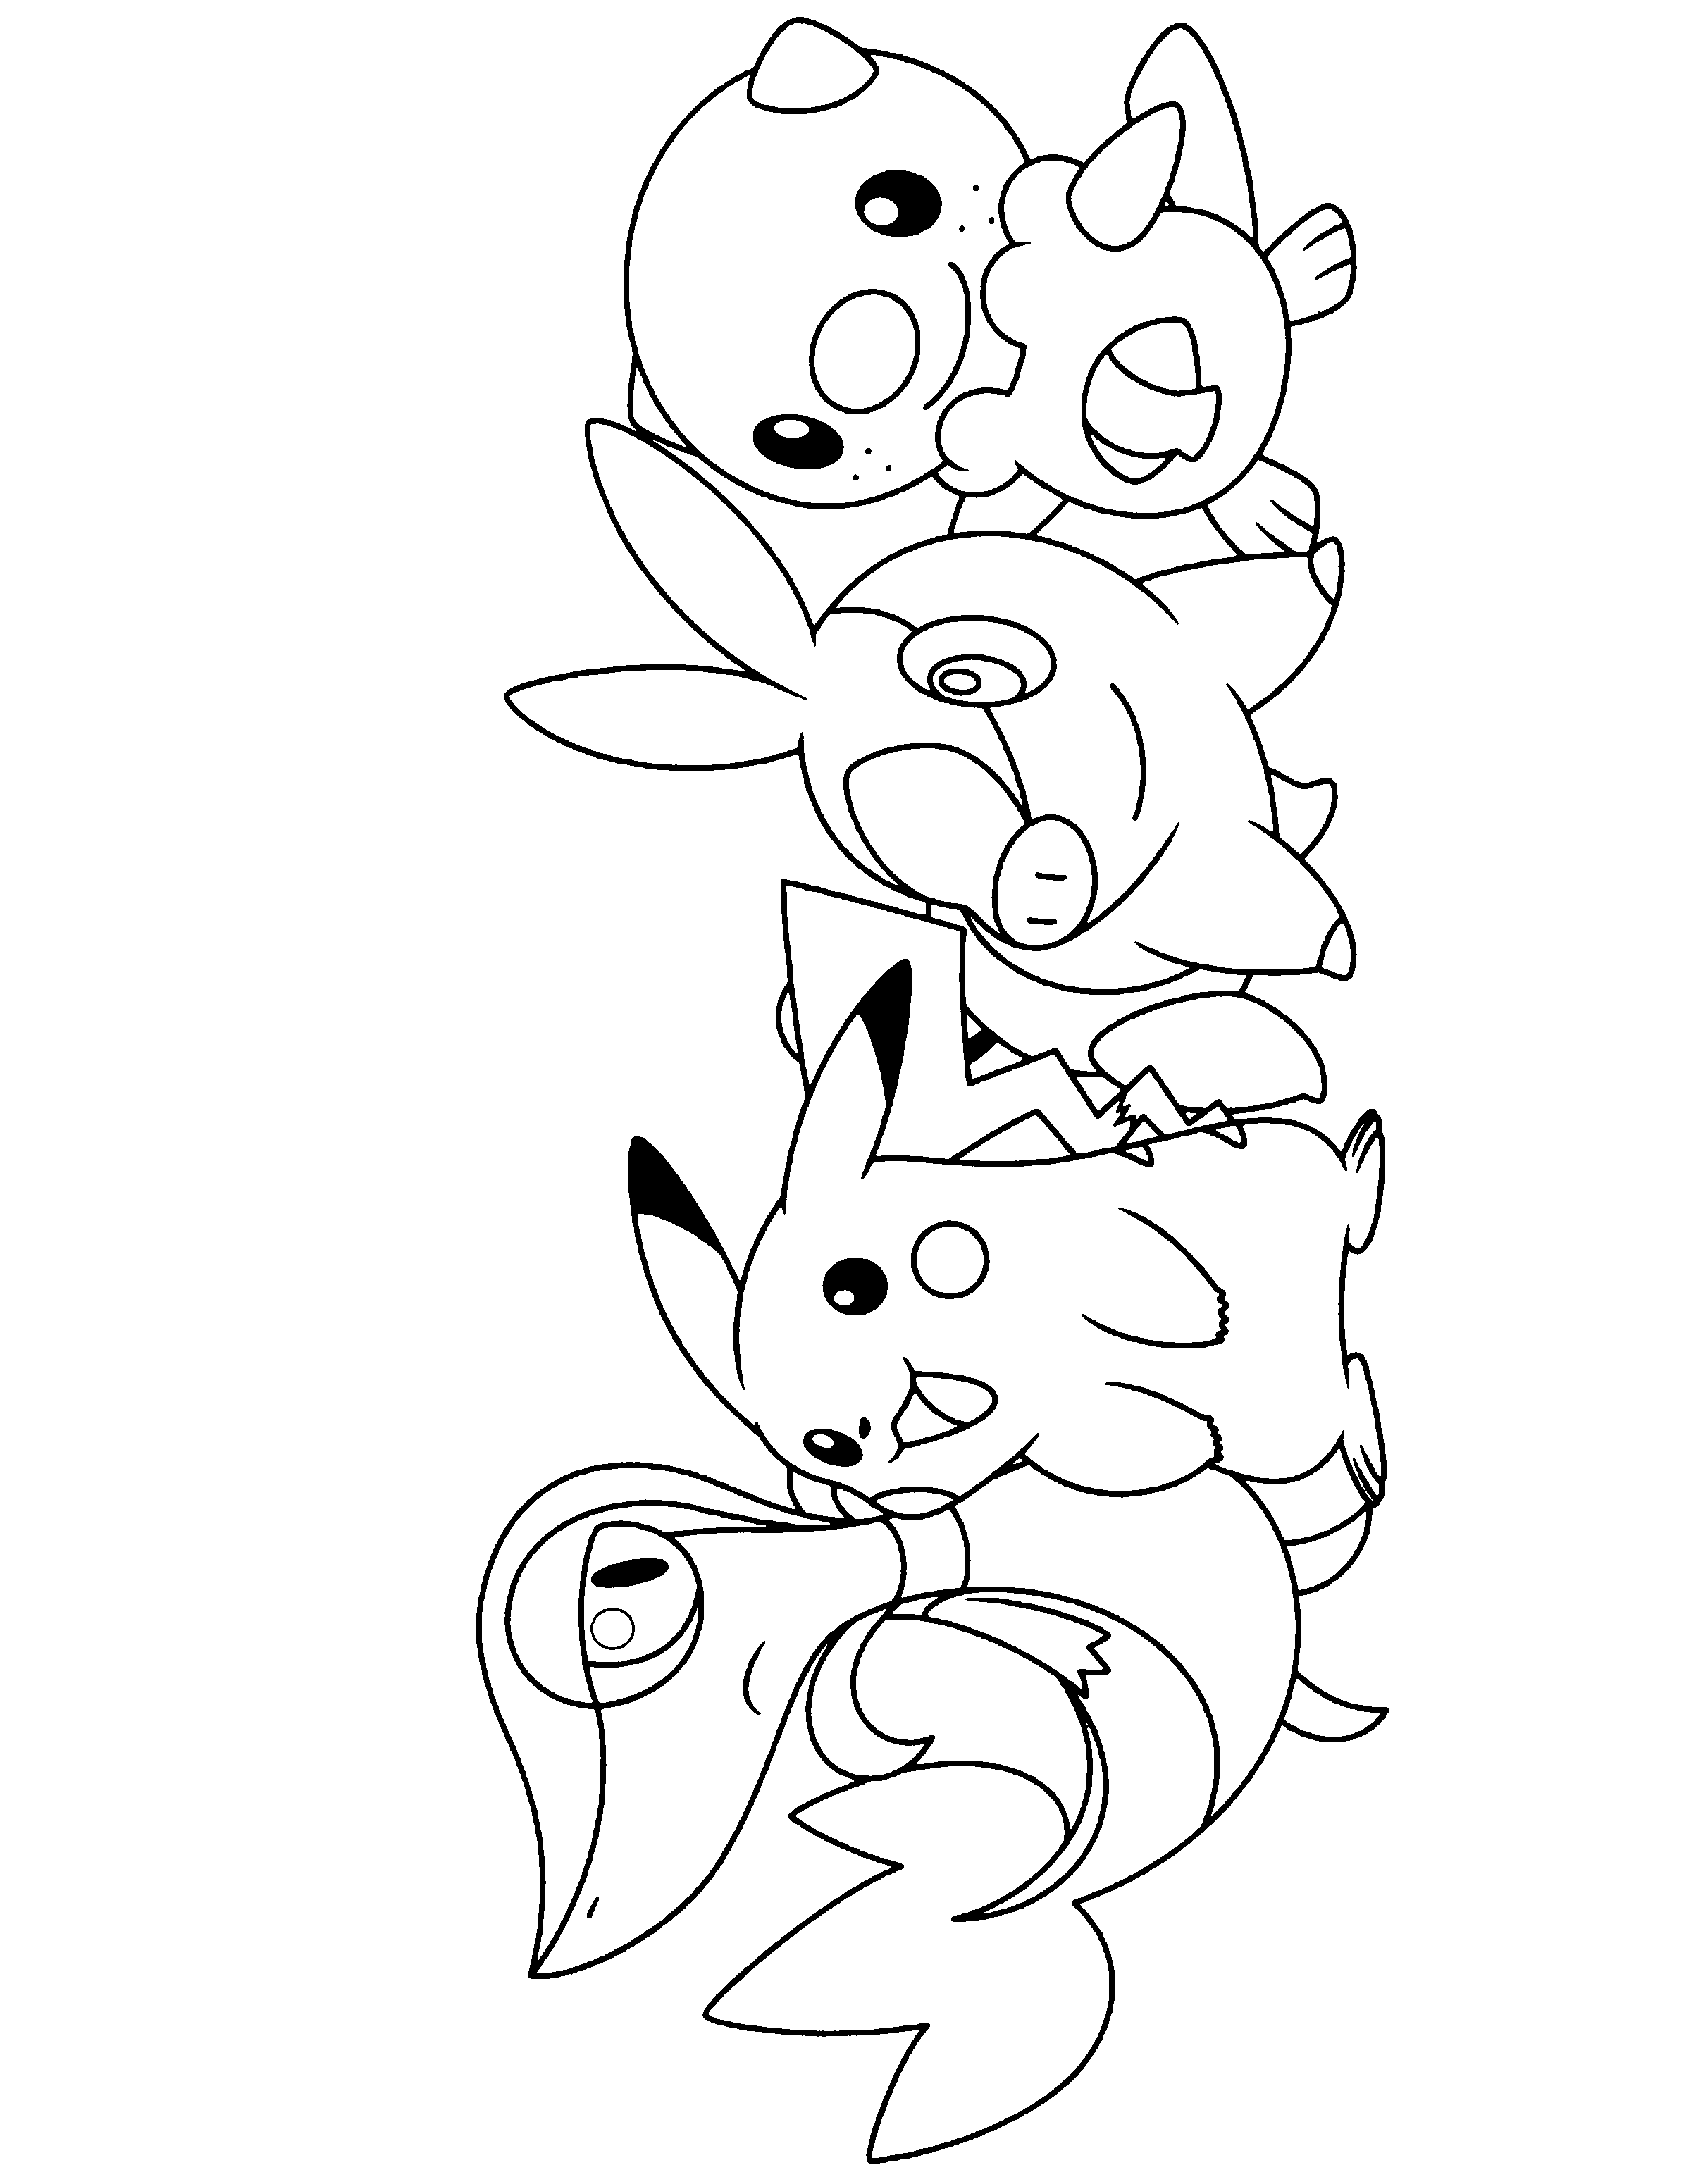 pokemon black and white pictures free pokemon coloring pages black and white at getdrawings white pokemon and black pictures